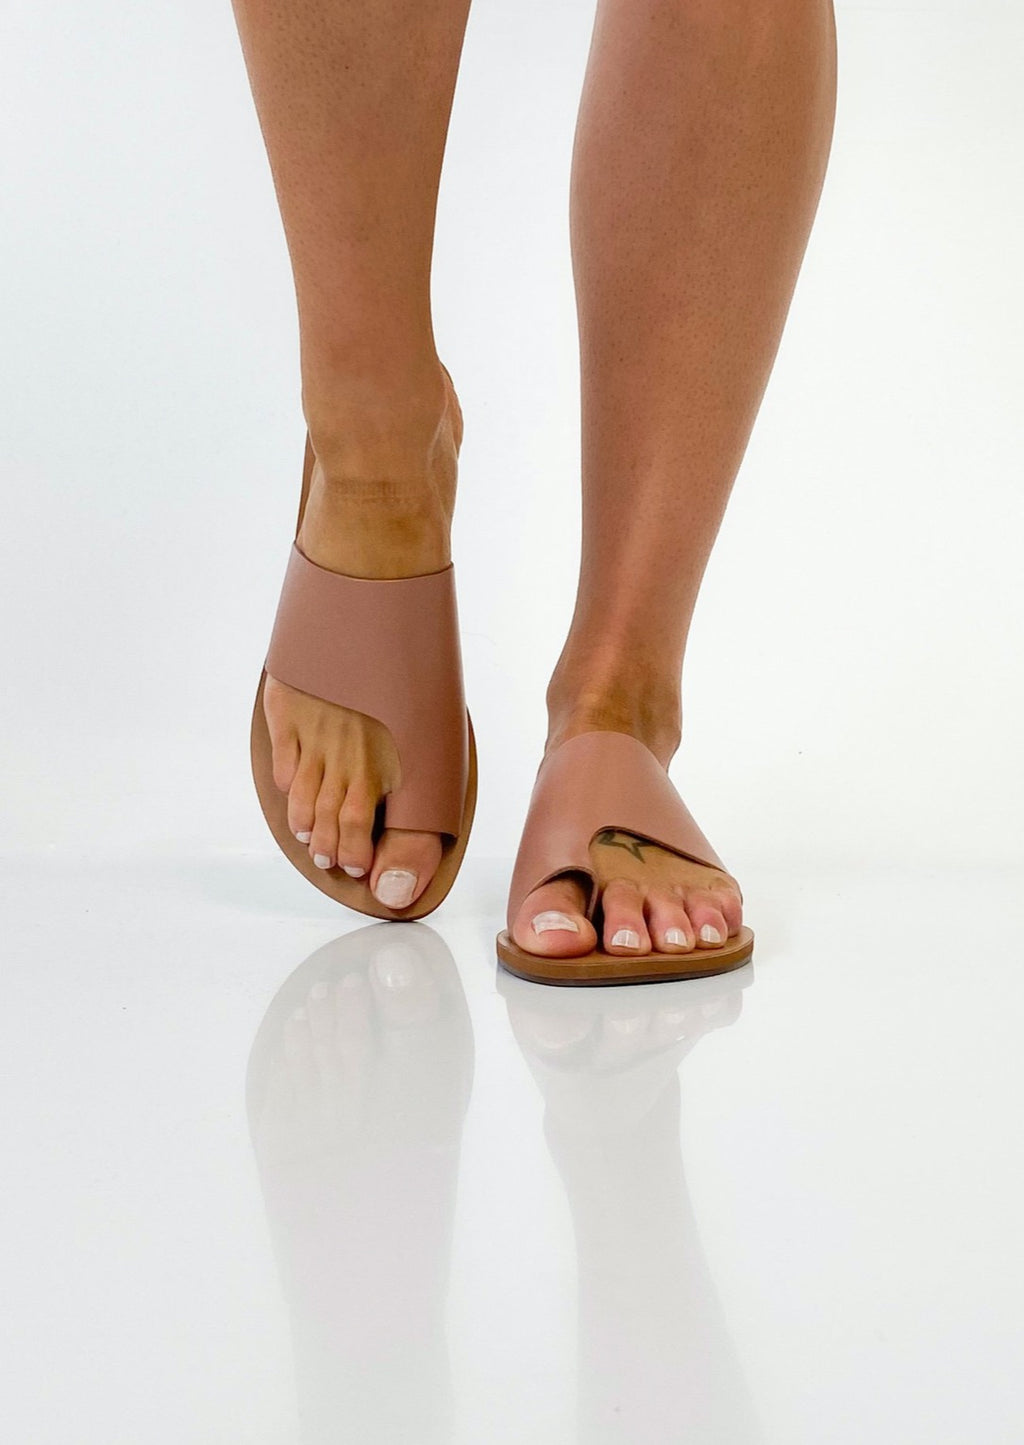 Minimal Rose Slide, by Anacapri  Our summer slide pick for colour and style  Beautiful soft leather in this seasons nude - rose  You won't want to take these off!  Pair with your favourite summer dress, linens or denim shorts  Fabric:  Leather